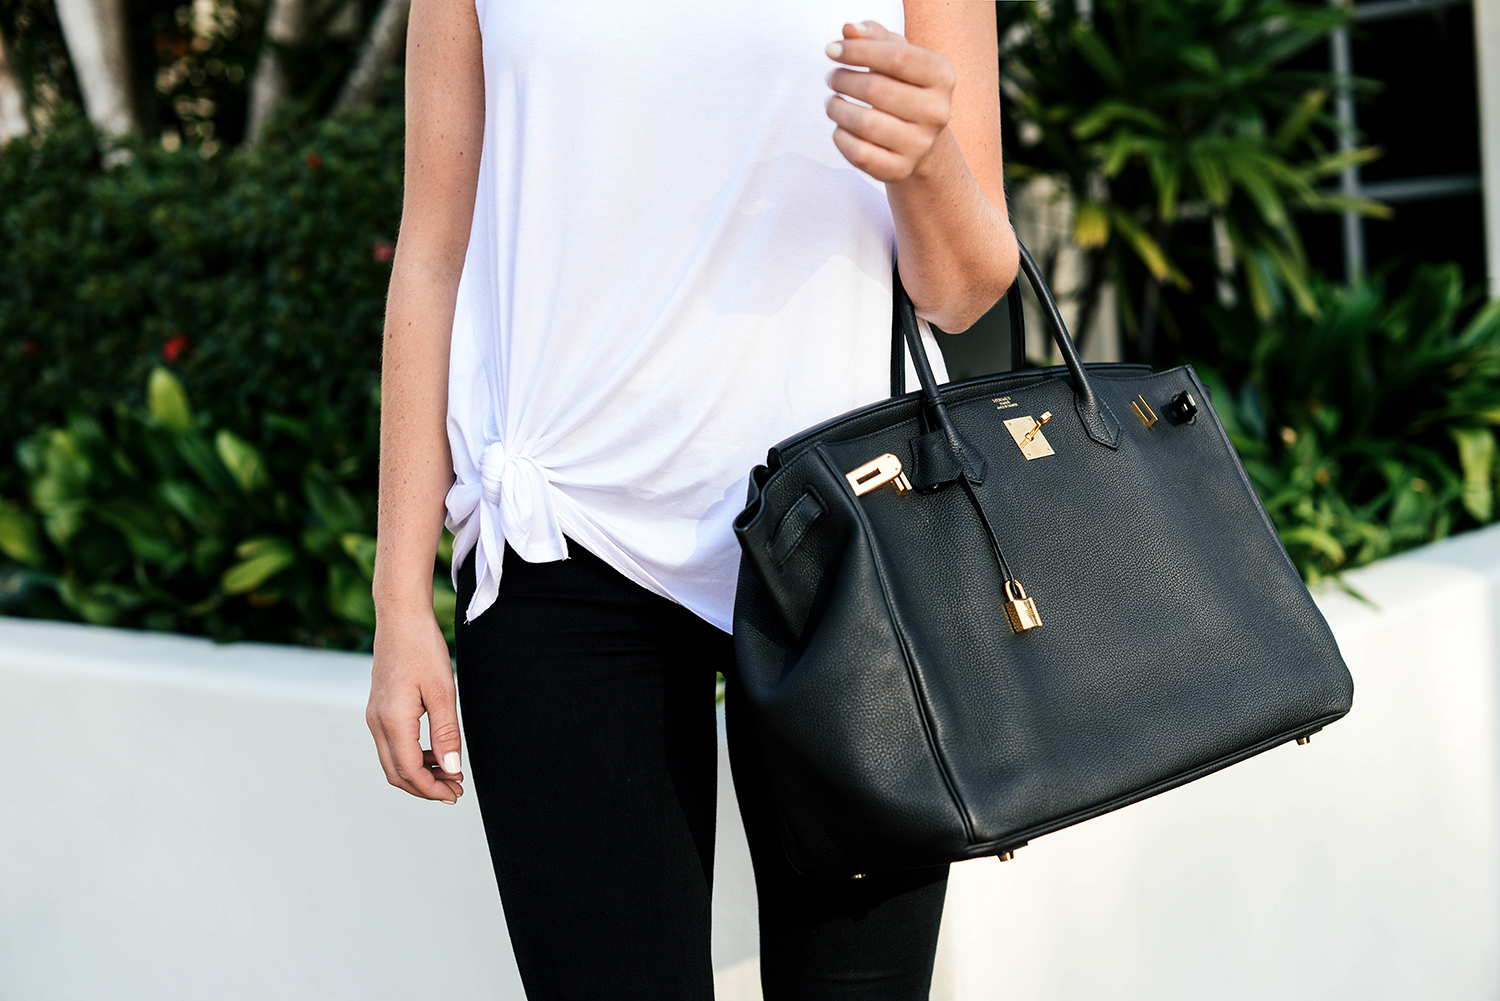 b71d7a804e8 Hermès Birkin Bag - Black Leather with Gold Hardware